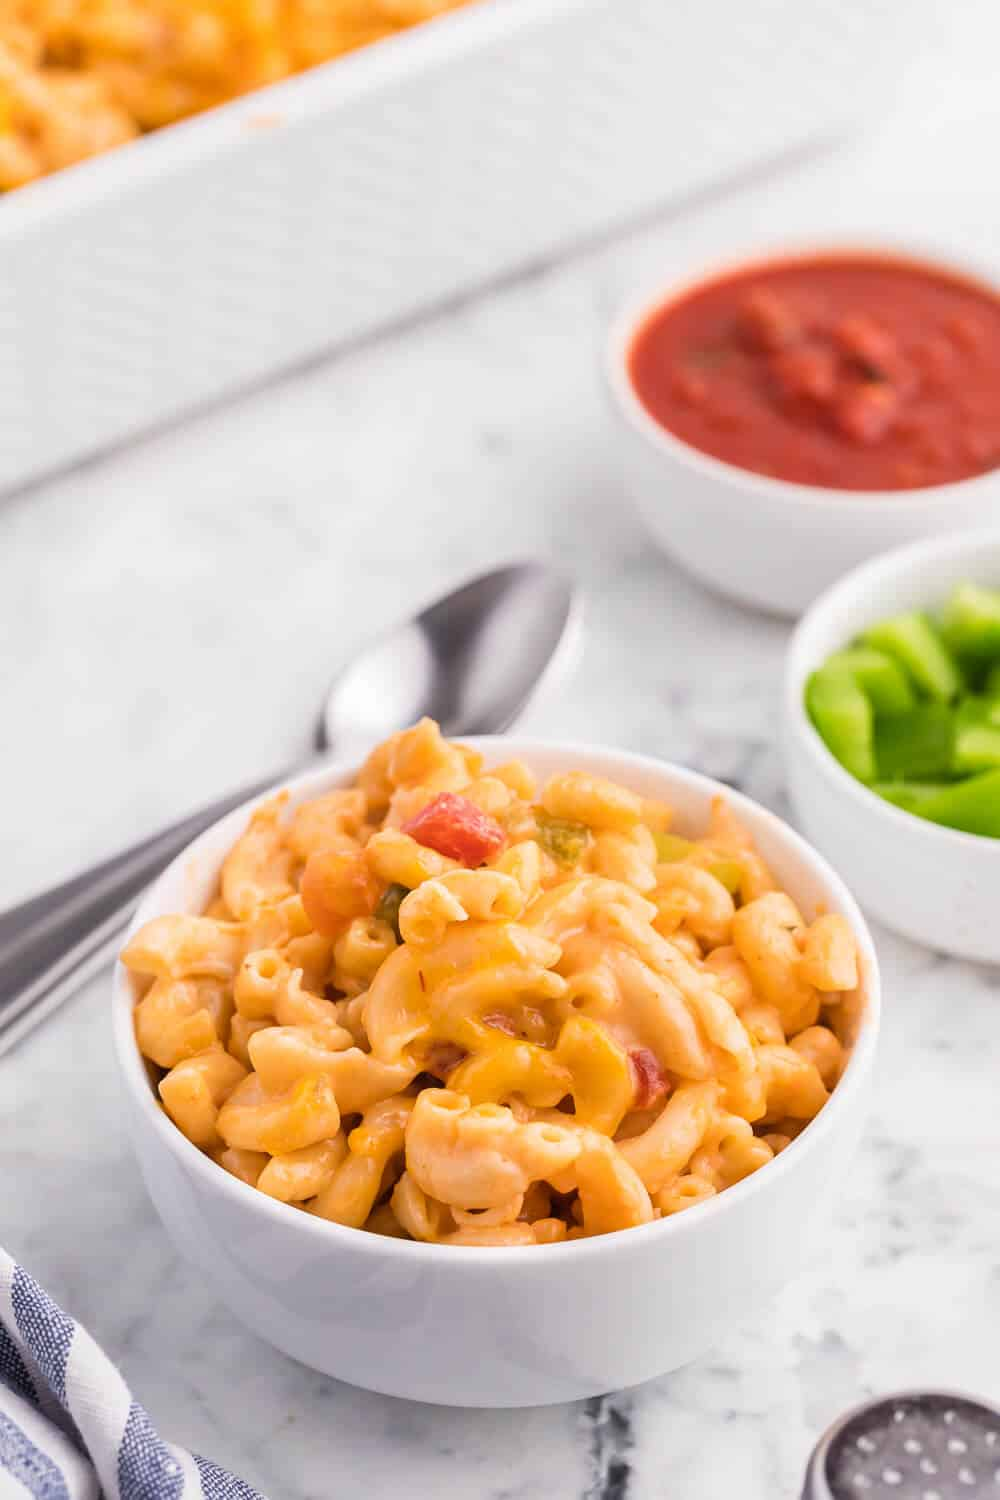 Salsa Macaroni & Cheese - Classic mac and cheese with a Tex Mex twist! Spice levels can be controlled by using medium or hot salsa, which is a great compliment to the cheesy, creamy sauce.